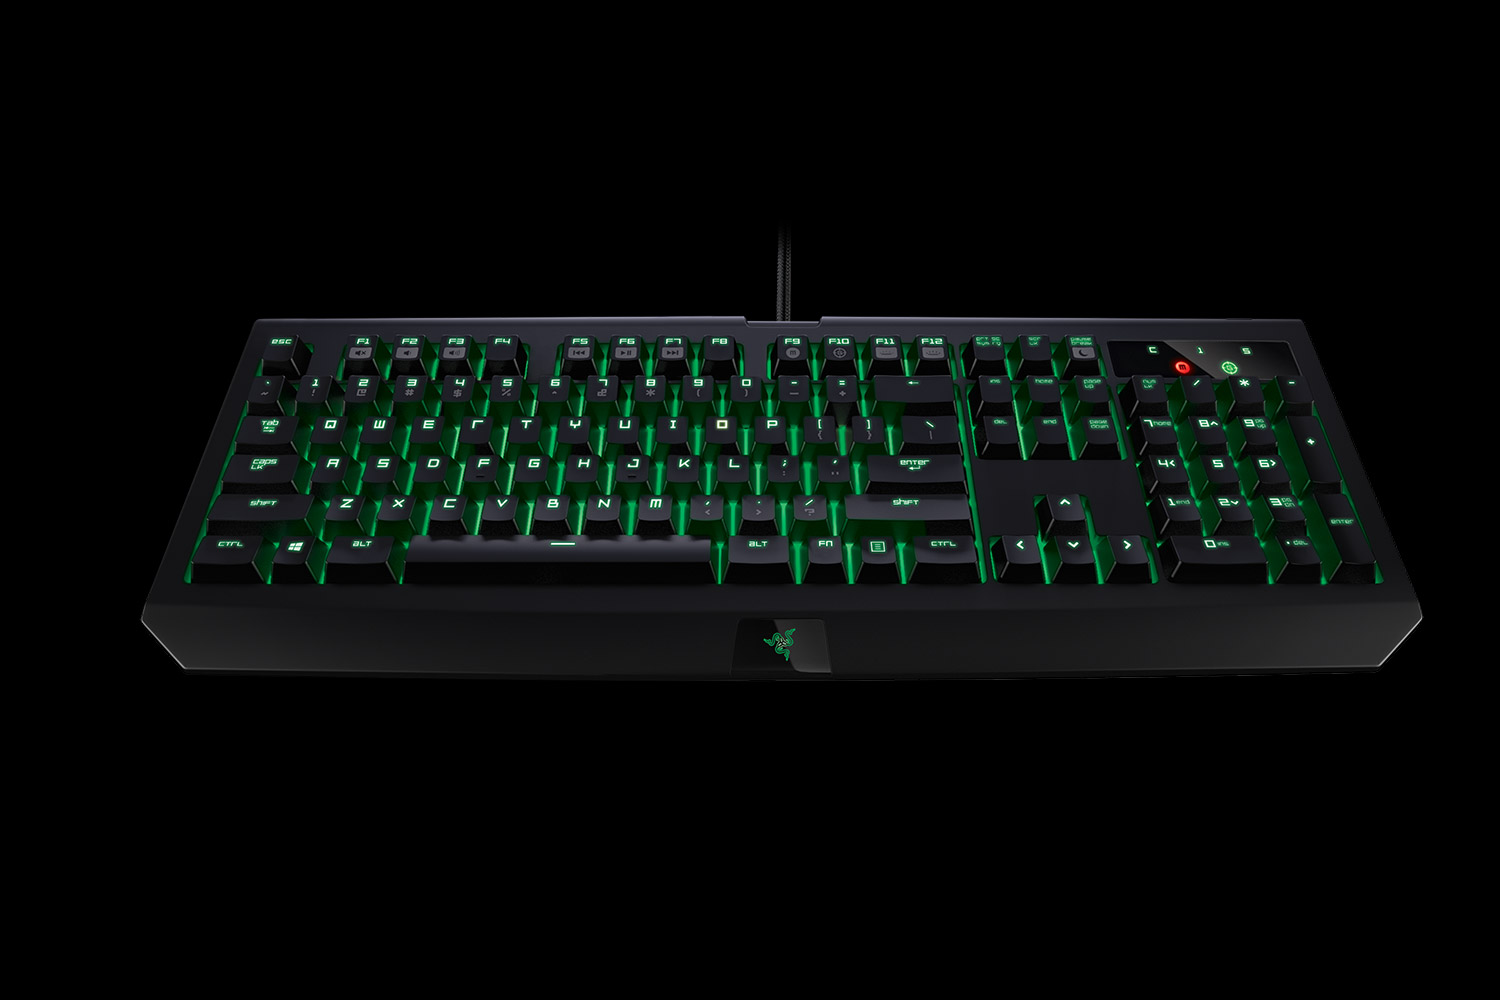 RAZER KEYBOARD BLACKWIDOW ULTIMATE 2016 STEALTH EDITION